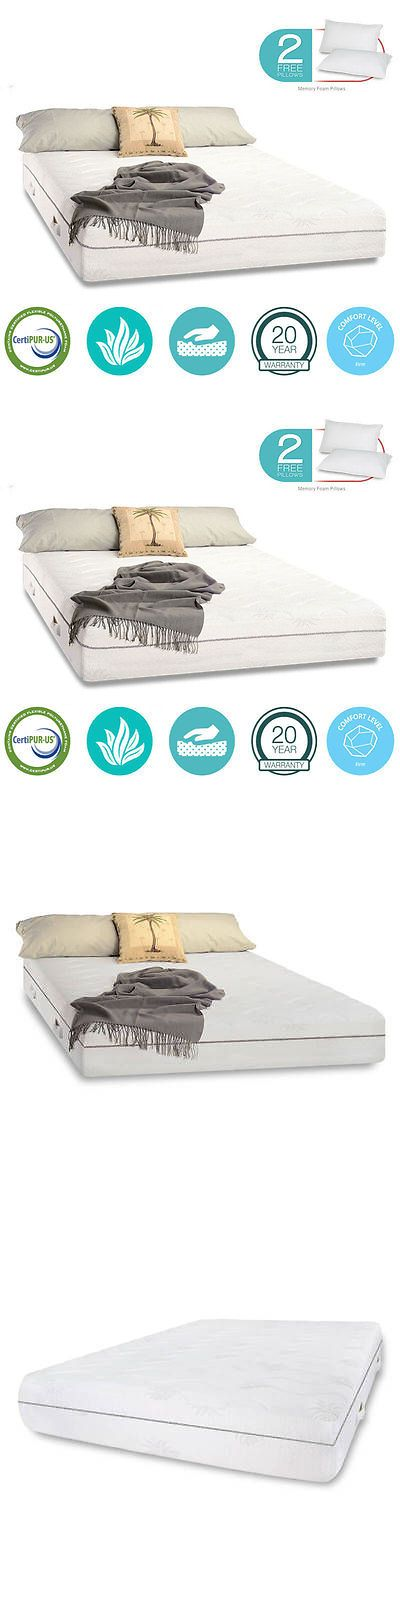 Mattresses 131588: 11 Inch King Cool Aloe Gel Firm Memory Foam Mattress Free Pillows And Cover Sale -> BUY IT NOW ONLY: $429.99 on eBay!